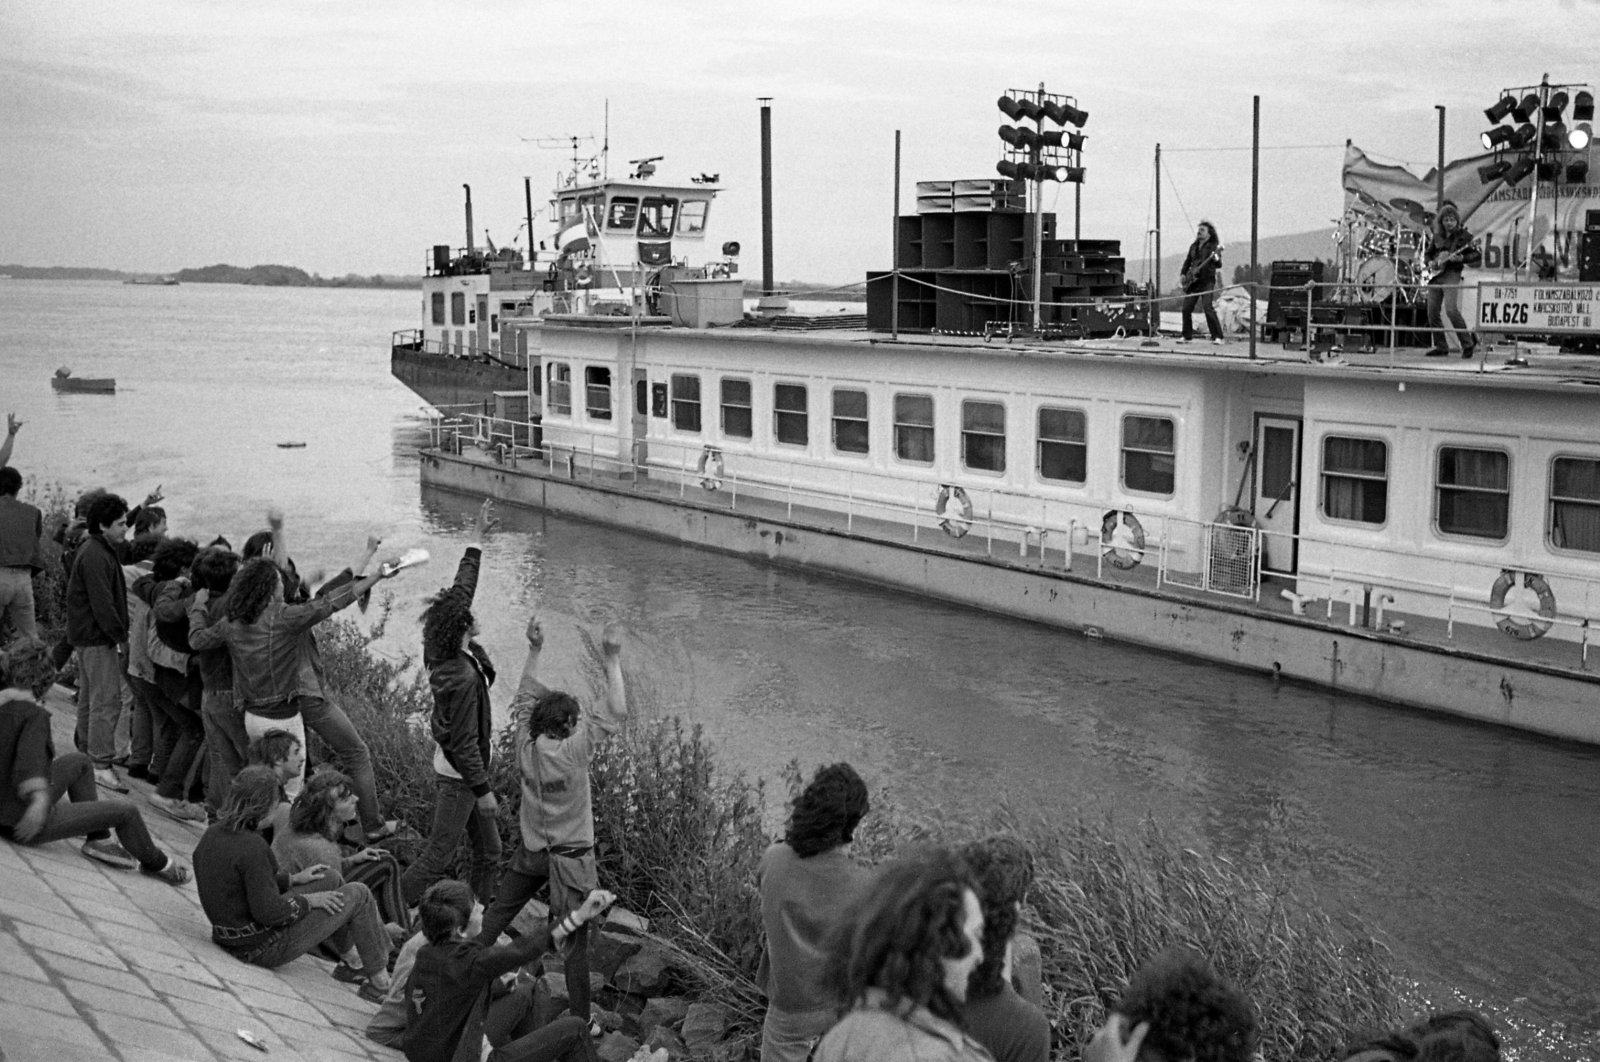 This old photo showing people listening to a concert by the Danube river is one of the photos on display at the exhibition. (Courtesy of Hungarian Cultural Center)